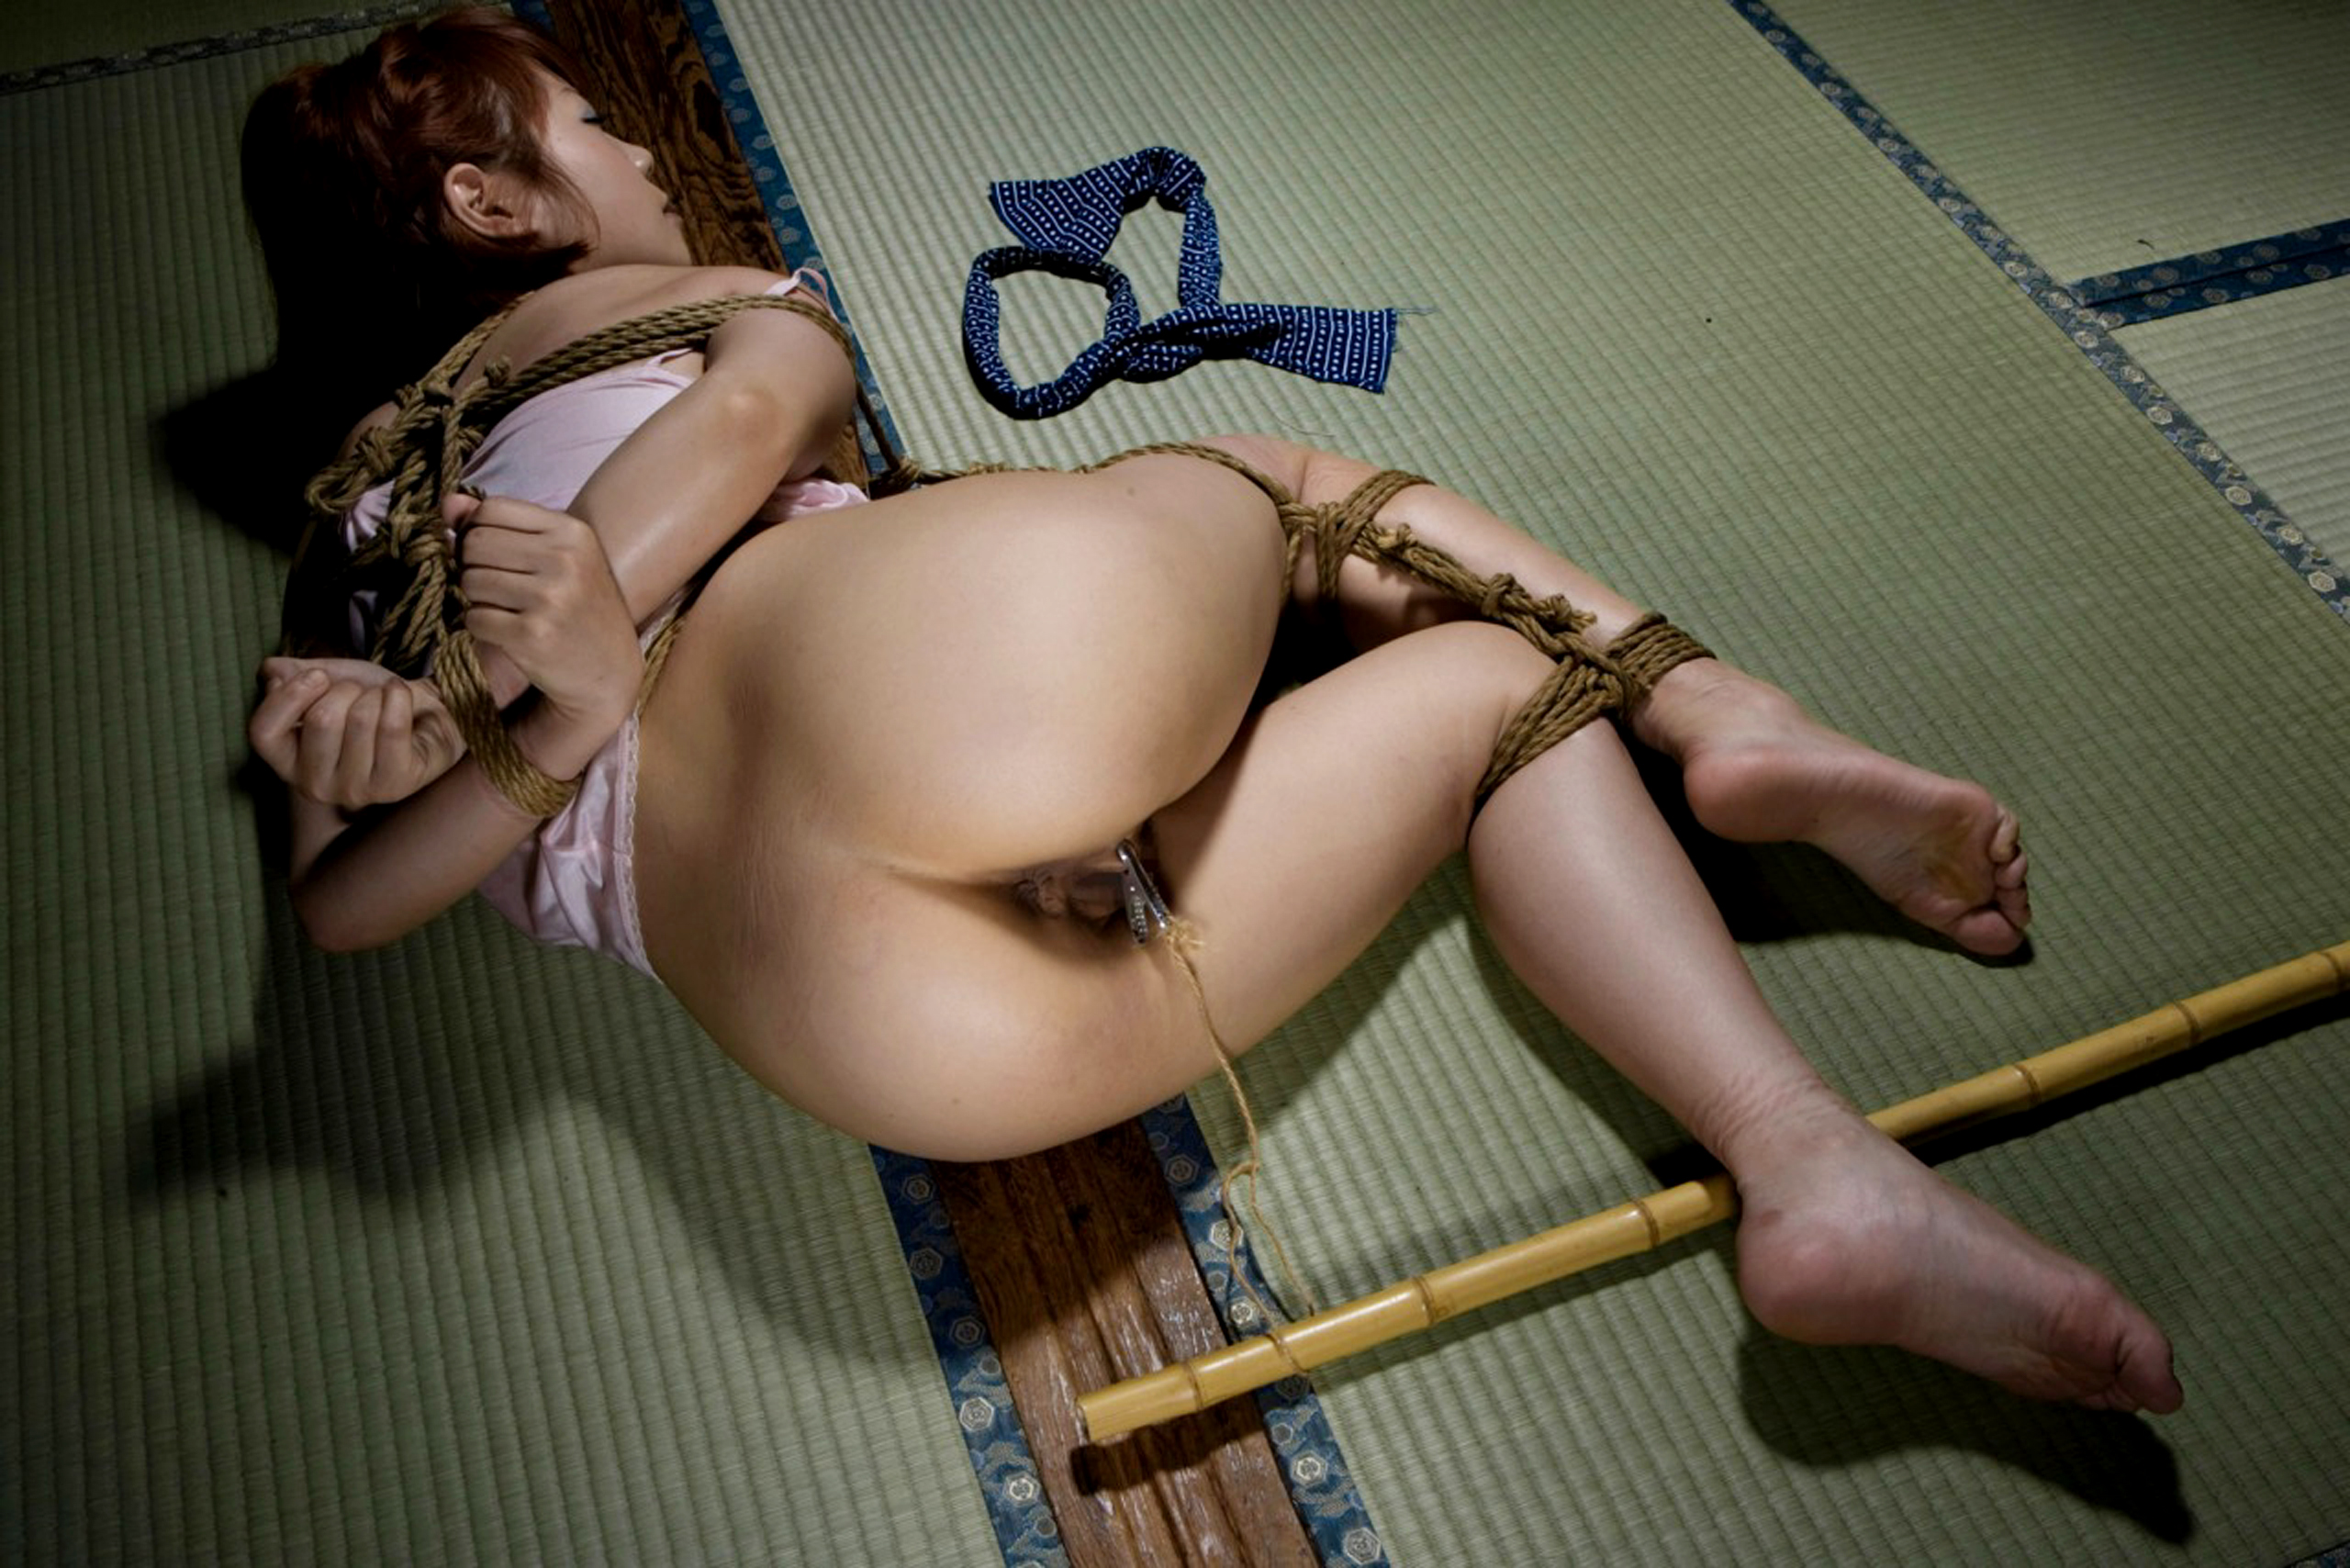 Day?... Porn Asian girl rope bondage smell wolf